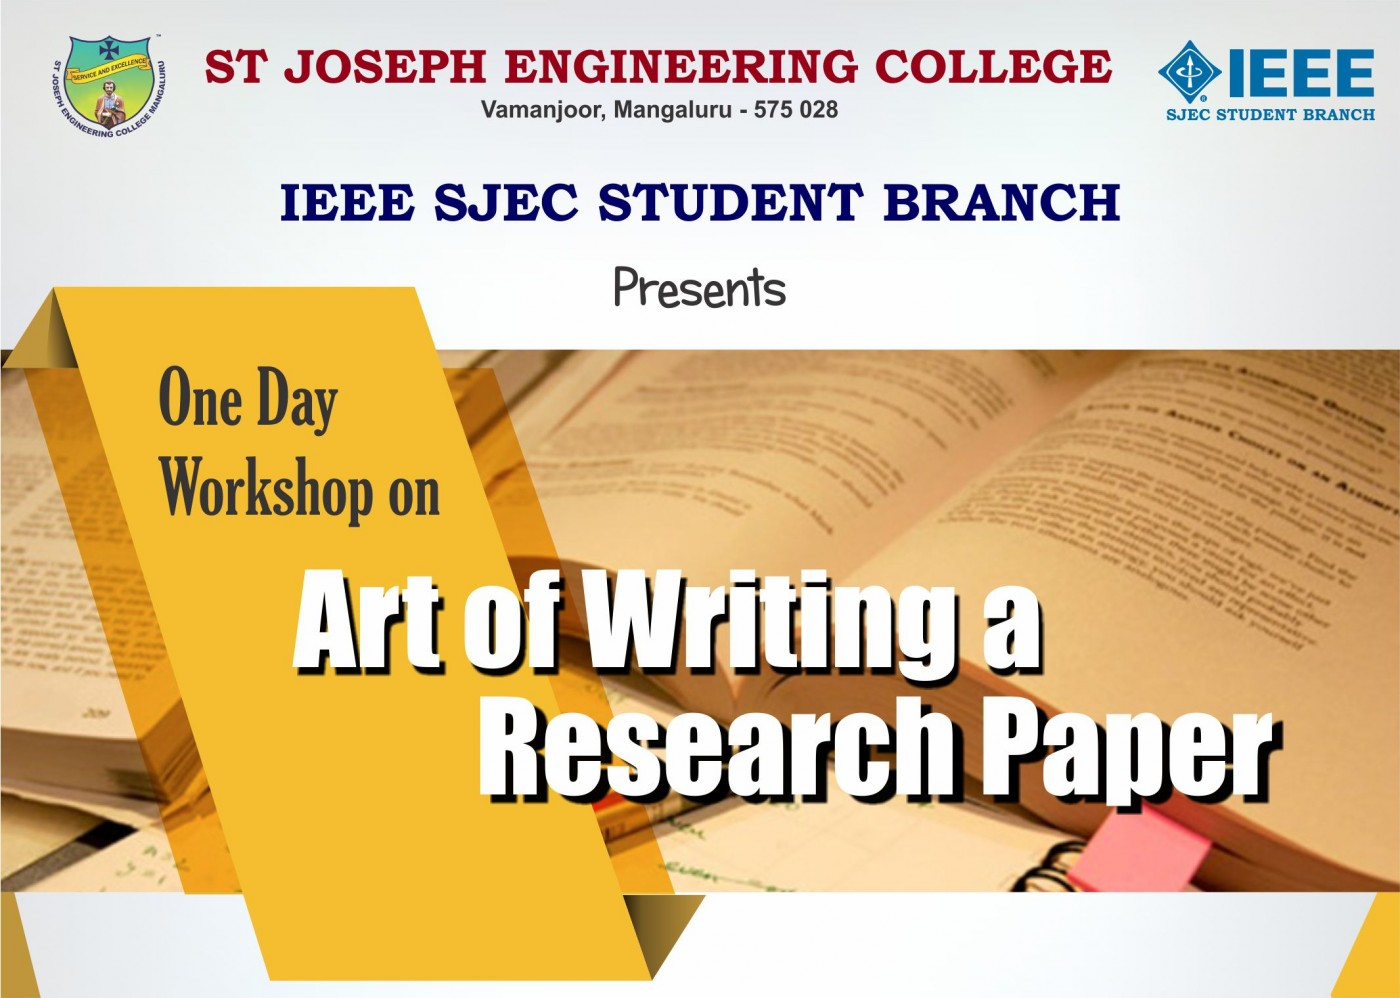 011 Workshop Banner Research Paper Striking Writing Papers A Complete Guide 16th Edition Pdf James D Lester Outline 1400